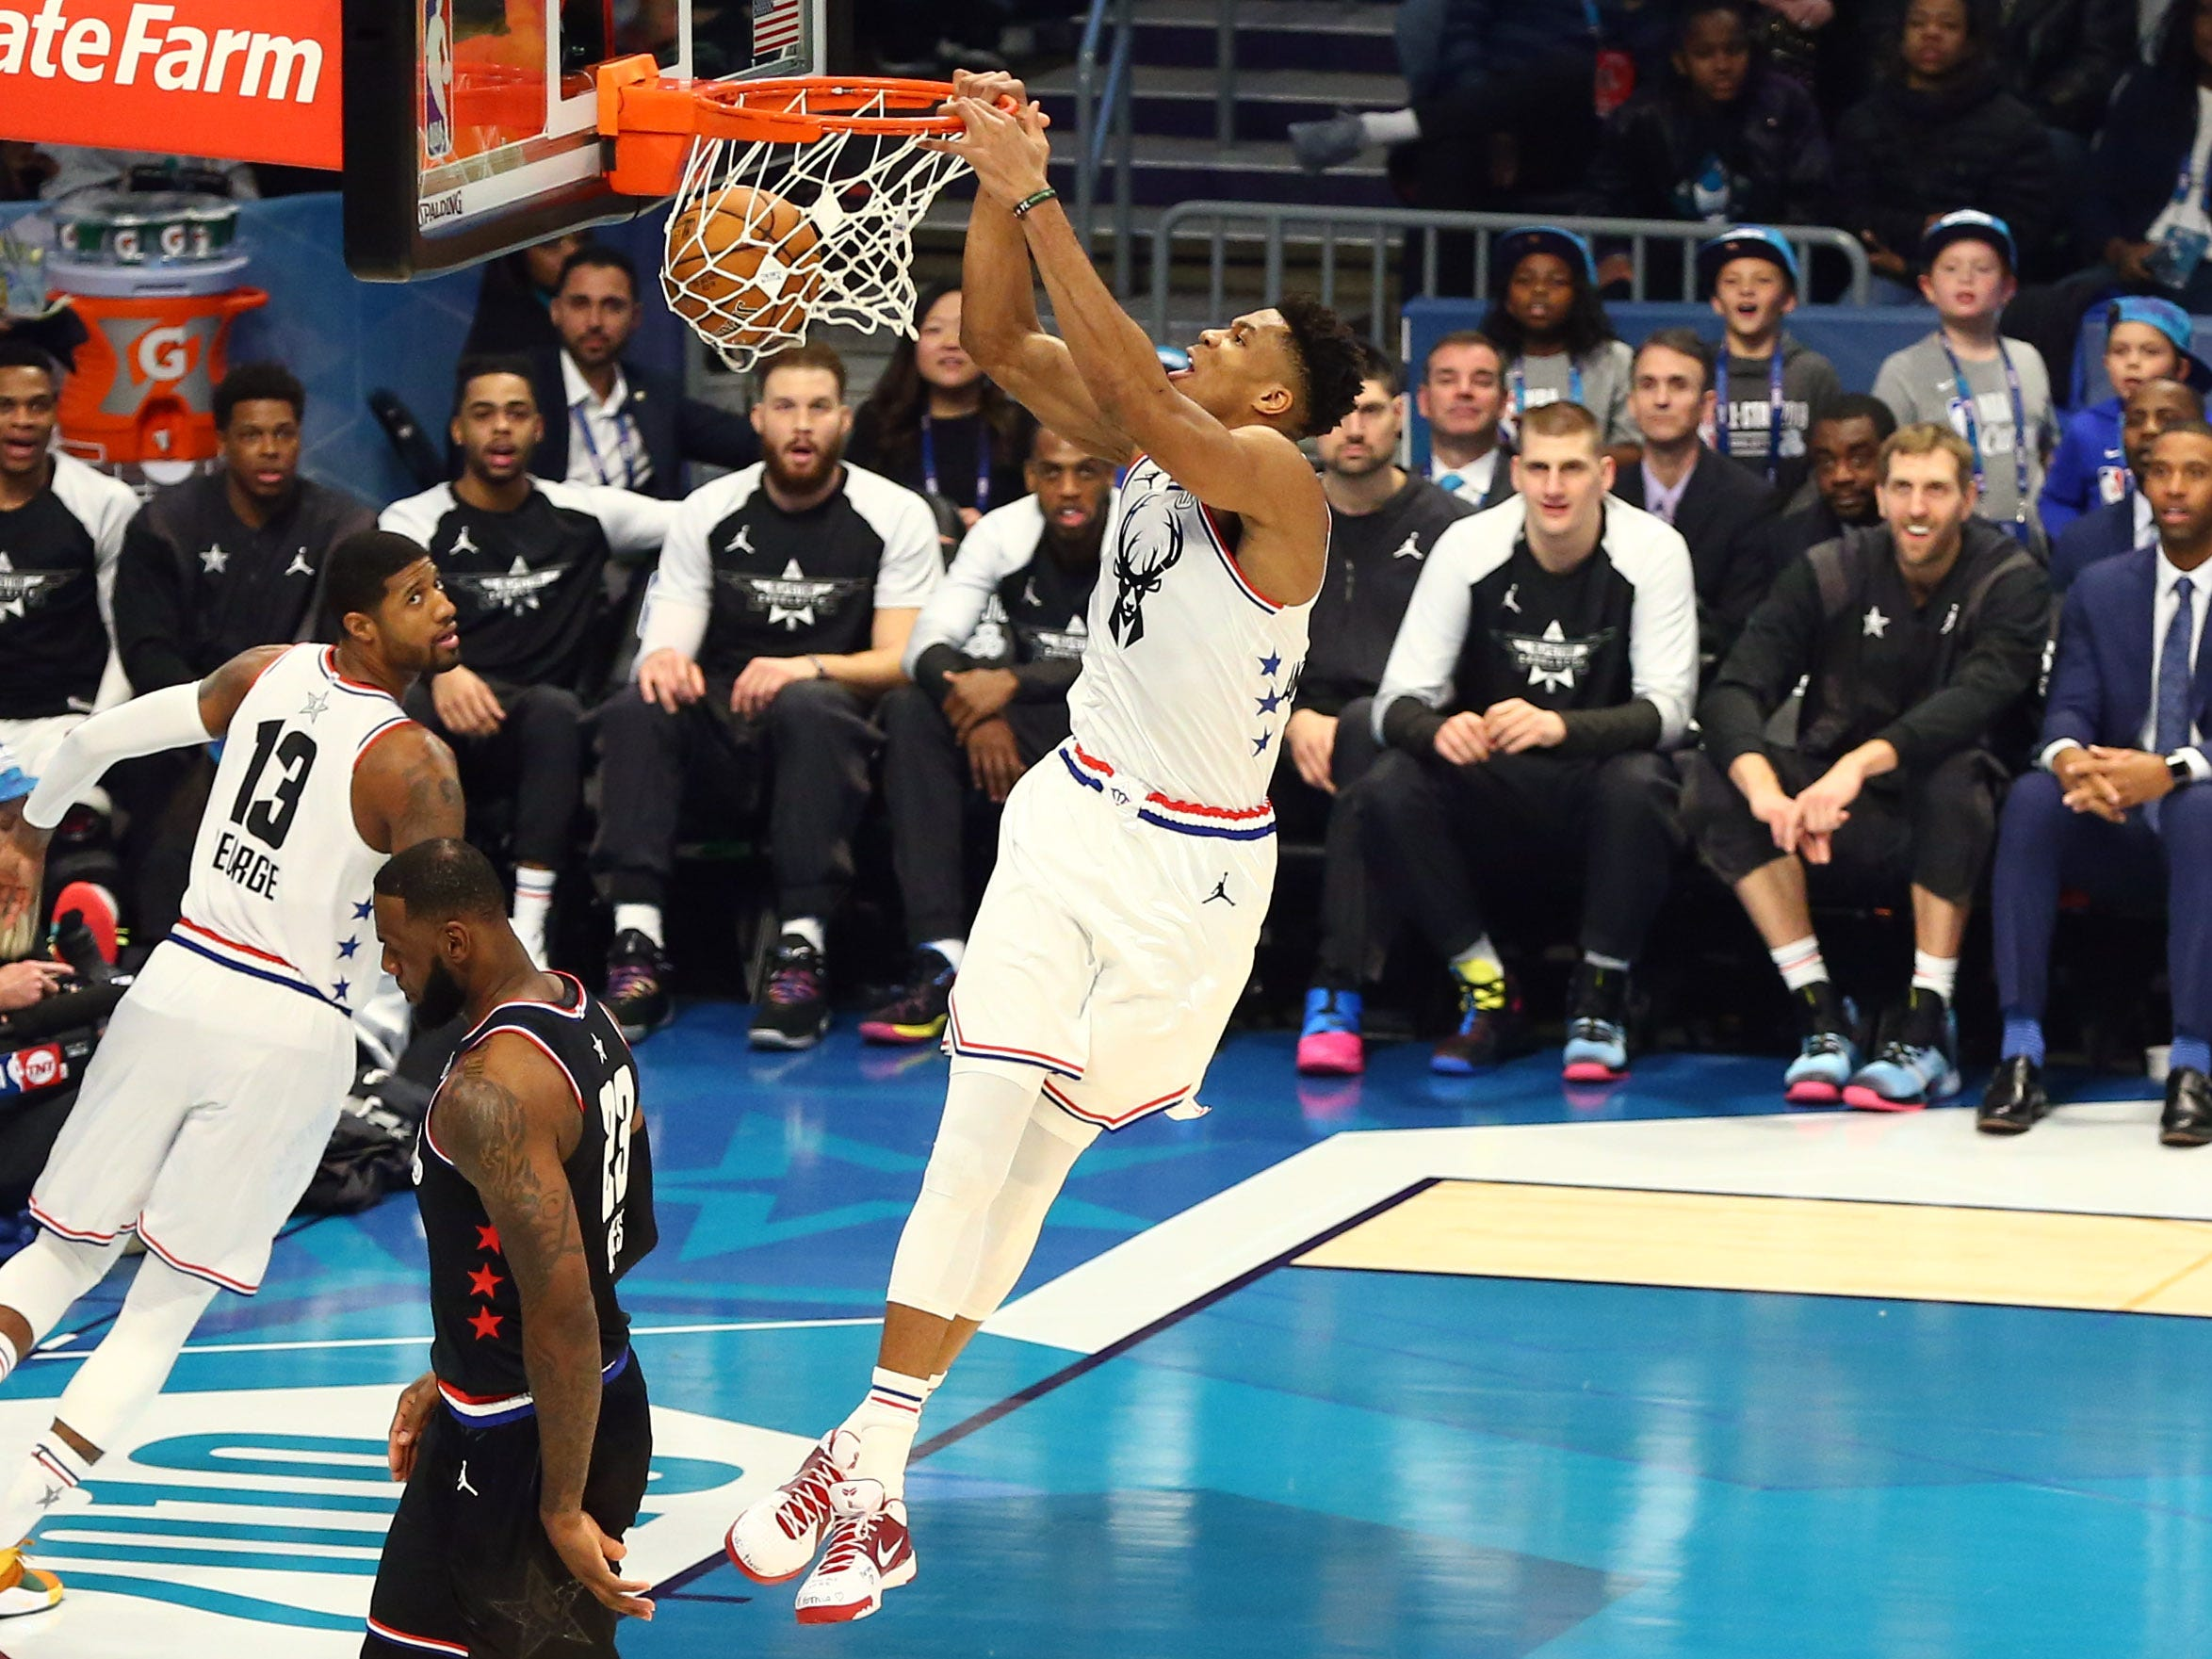 Giannis Antetokounmpo of the Milwaukee Bucks hangs on the rim after one of his 11 dunks on Sunday night in the NBA All-Star Game.